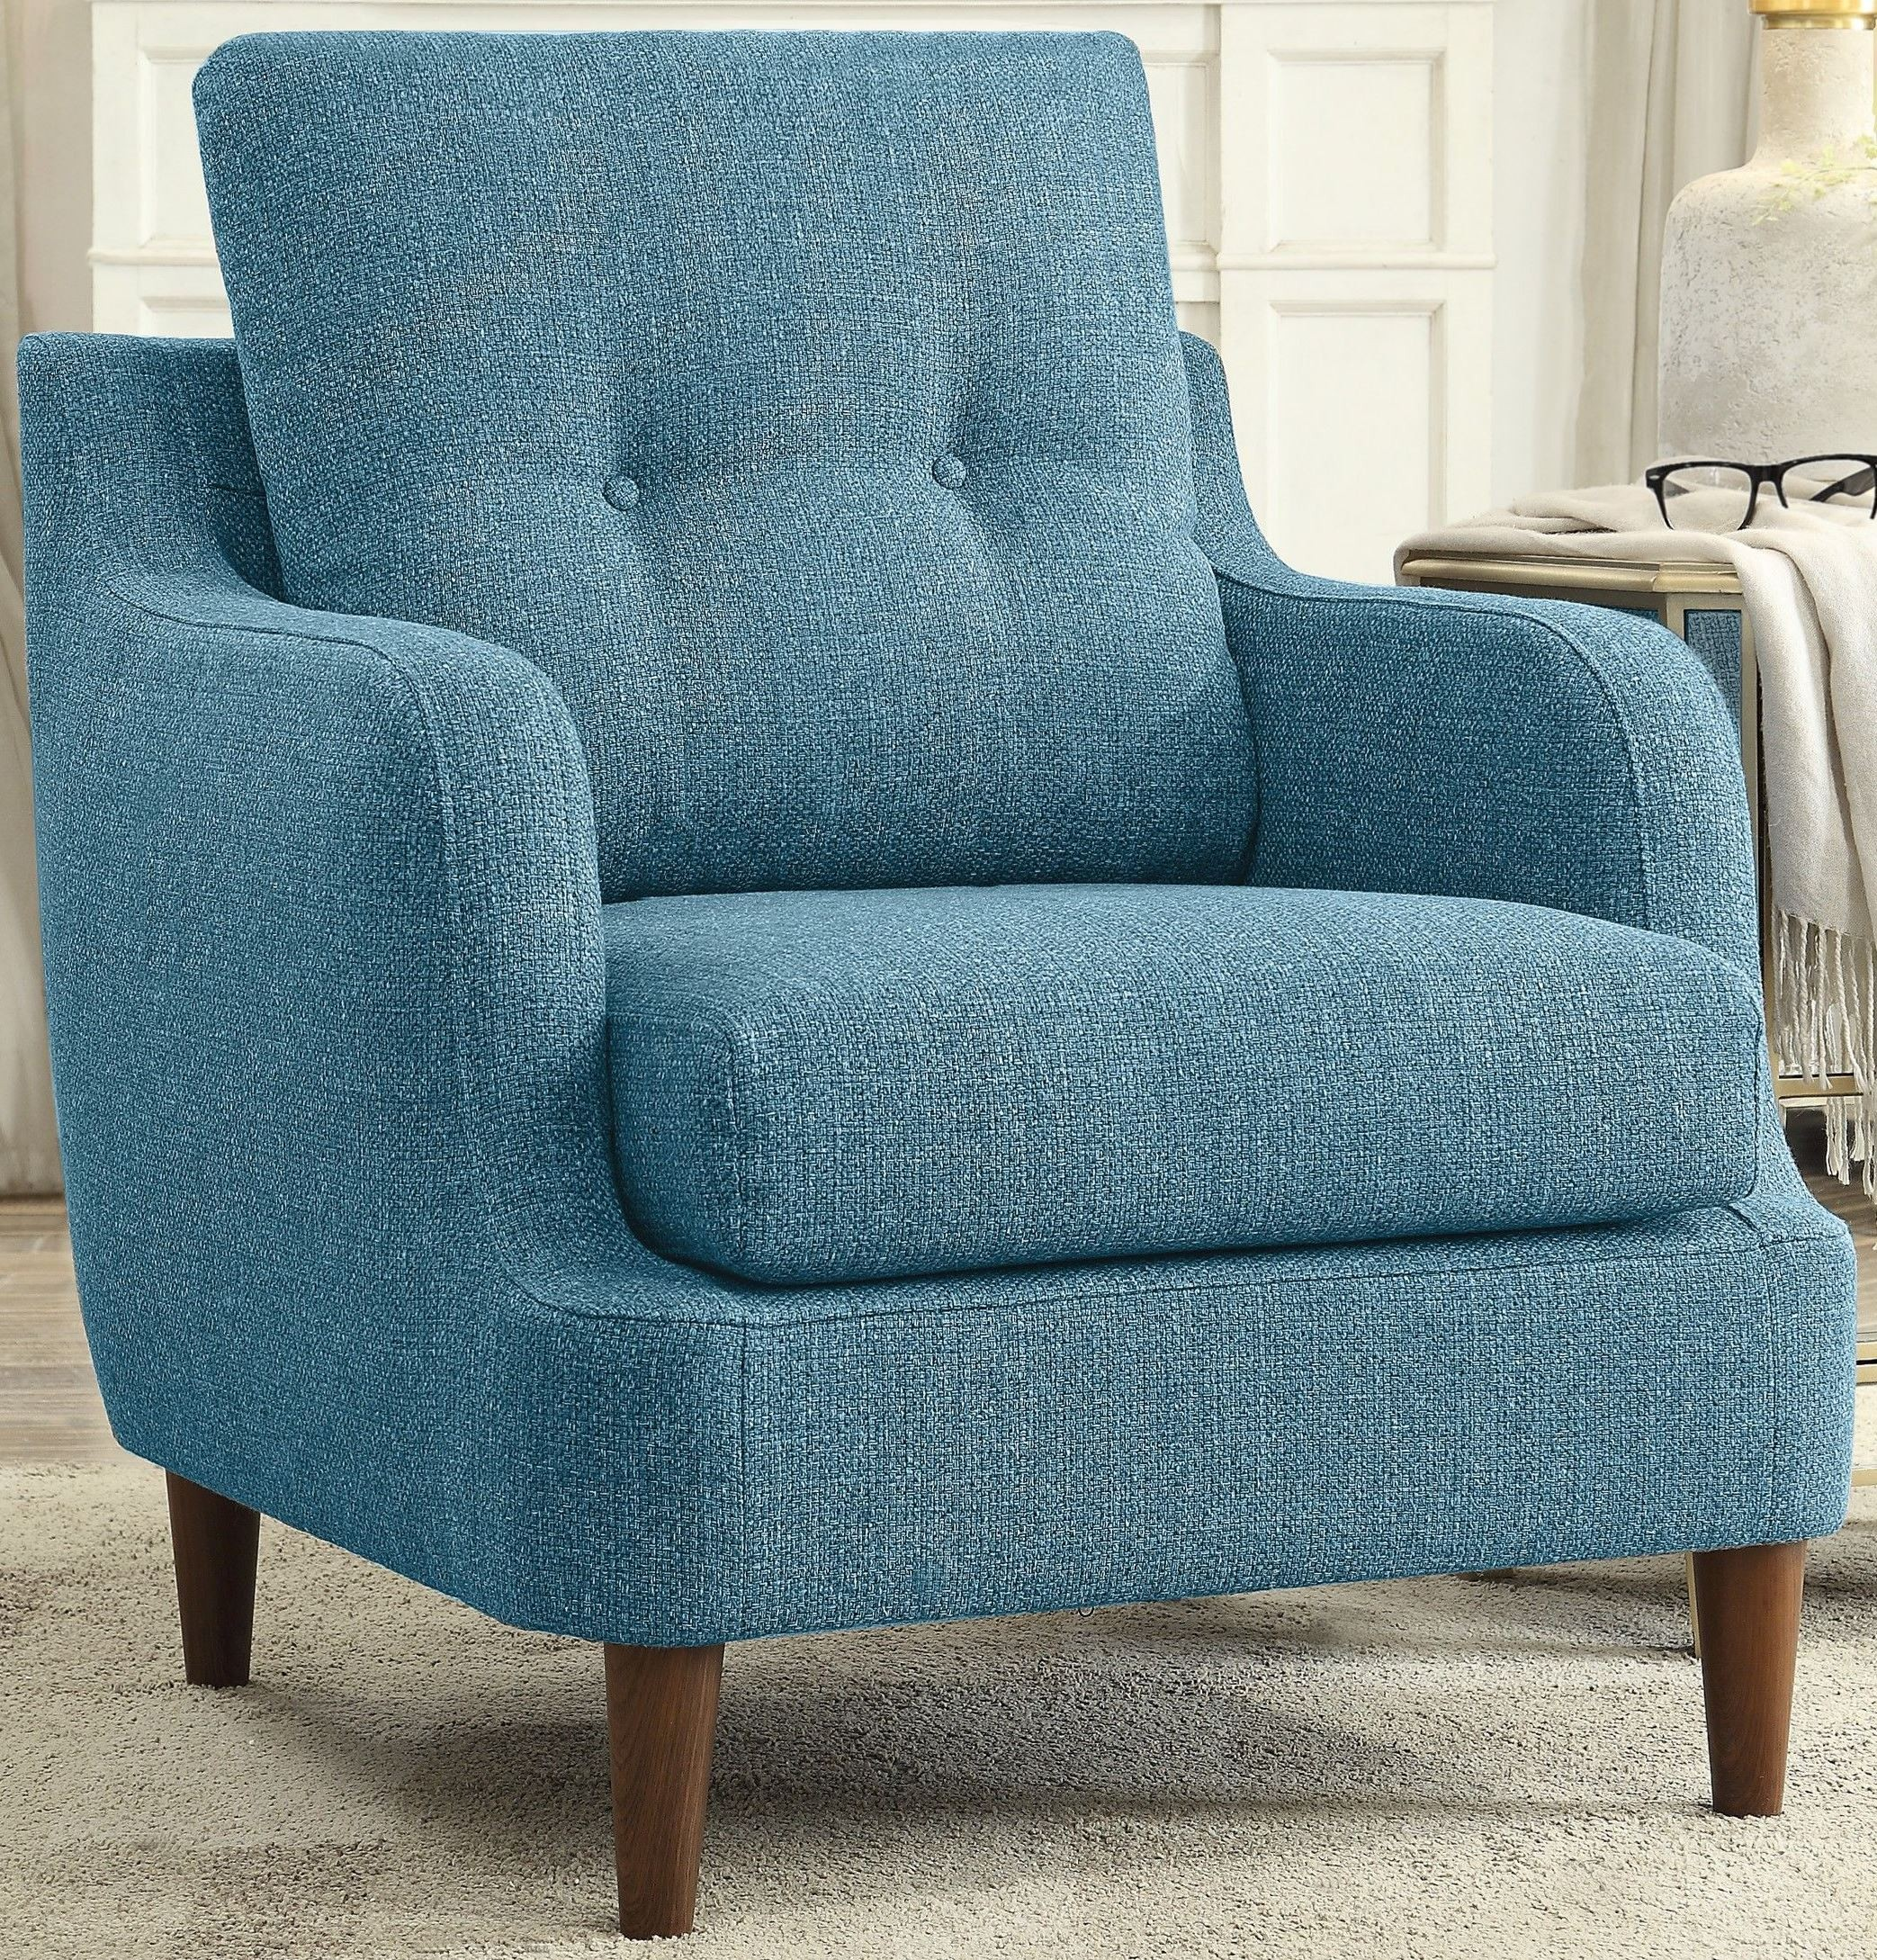 Cagle blue accent chair